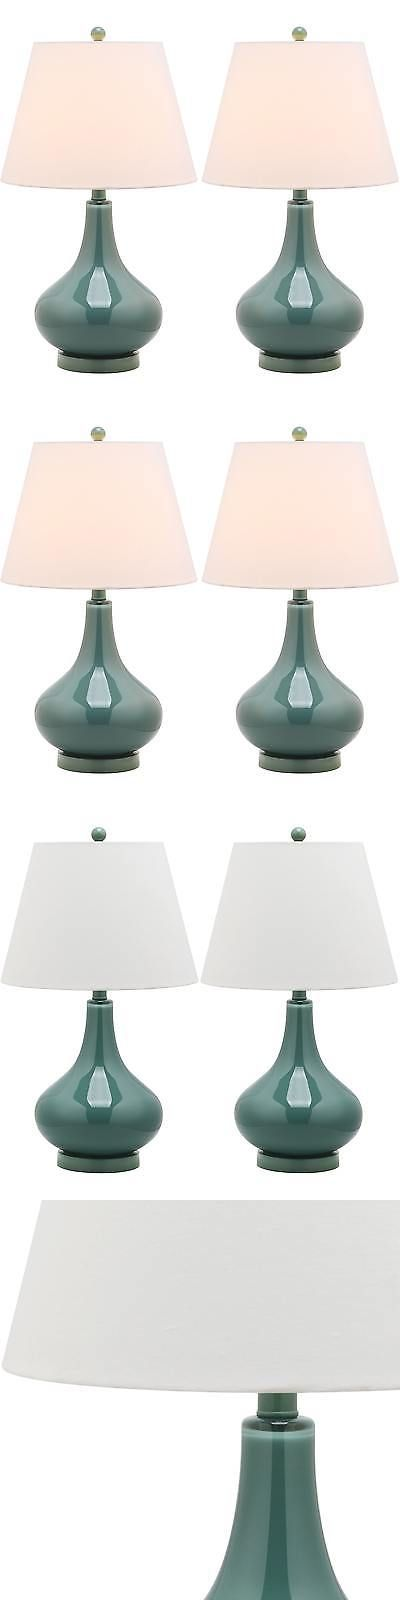 Lamps 112581: Safavieh Lighting 24-Inch Amy Gourd Glass Marine Blue Table Lamps (Set Of 2) -> BUY IT NOW ONLY: $129.99 on eBay!